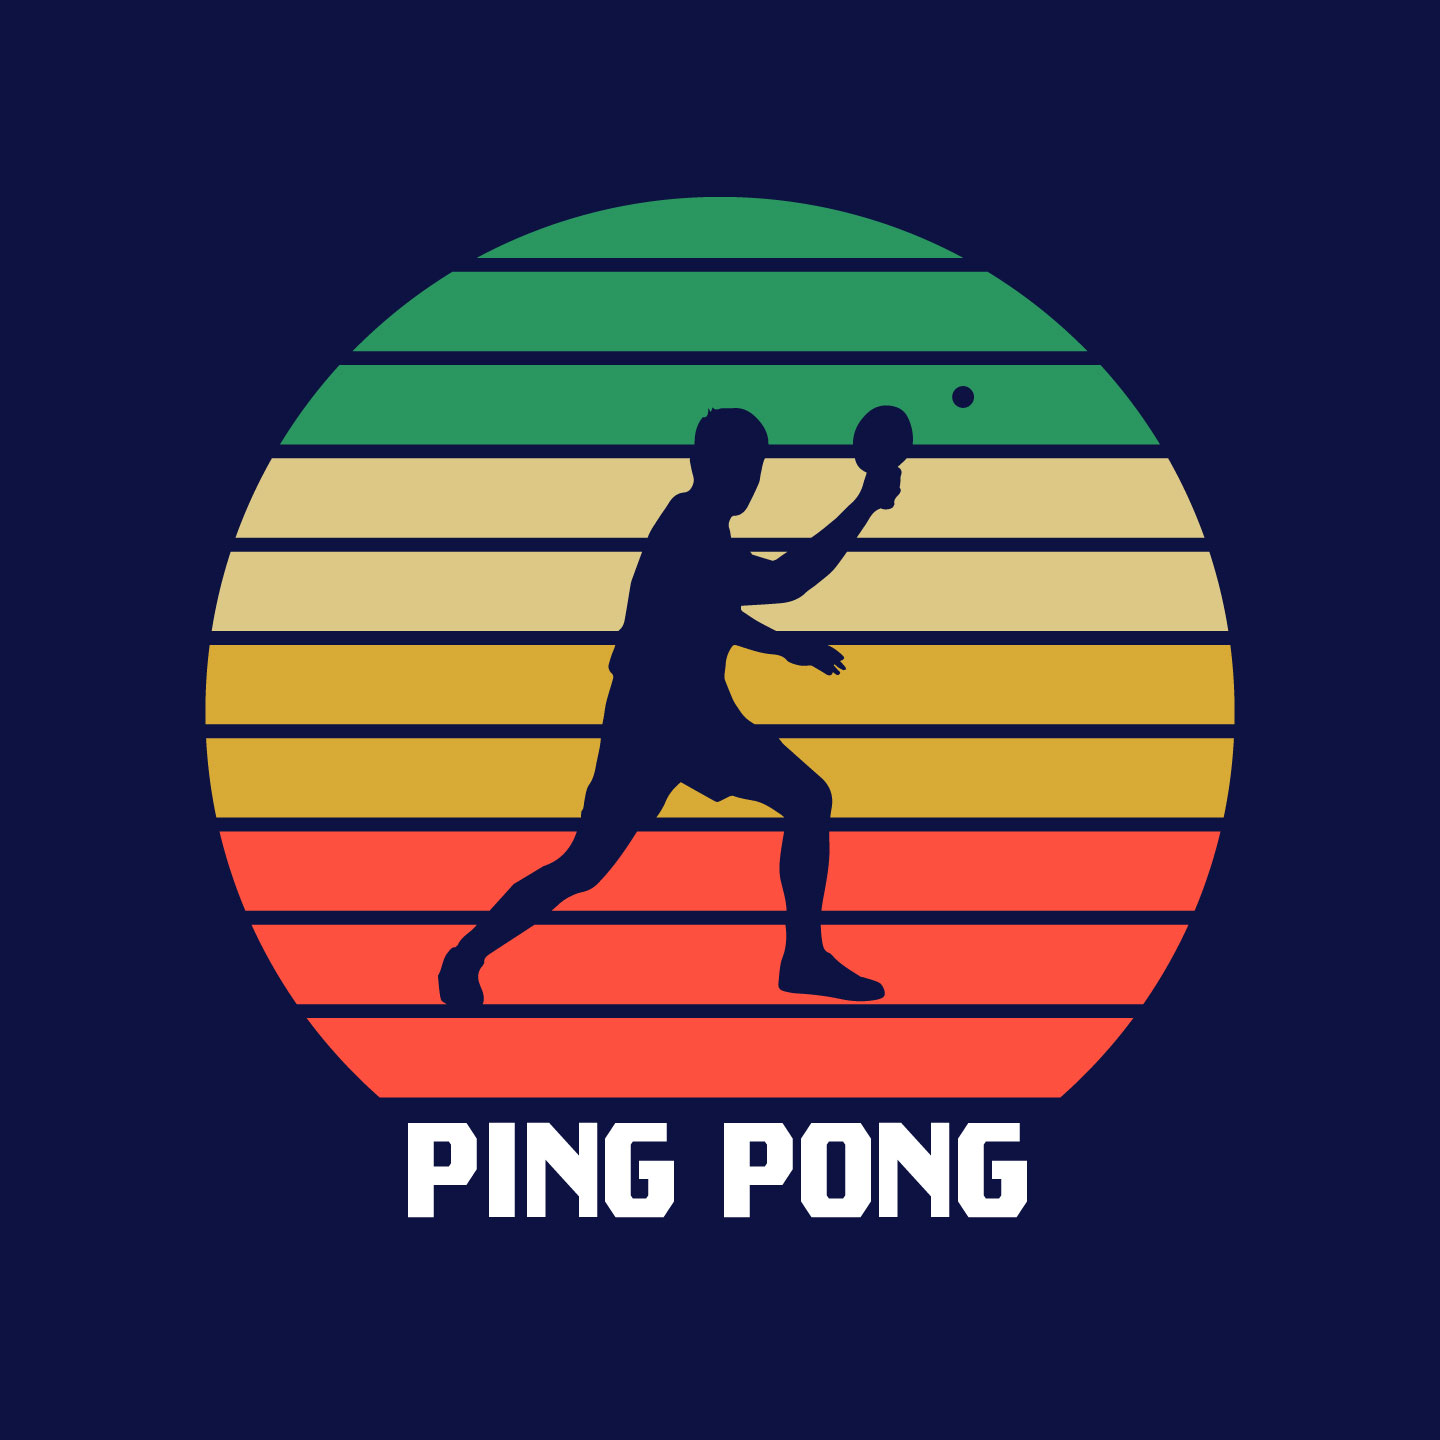 A0539d88 Ping Pong Retro Effect Vintage Colourful